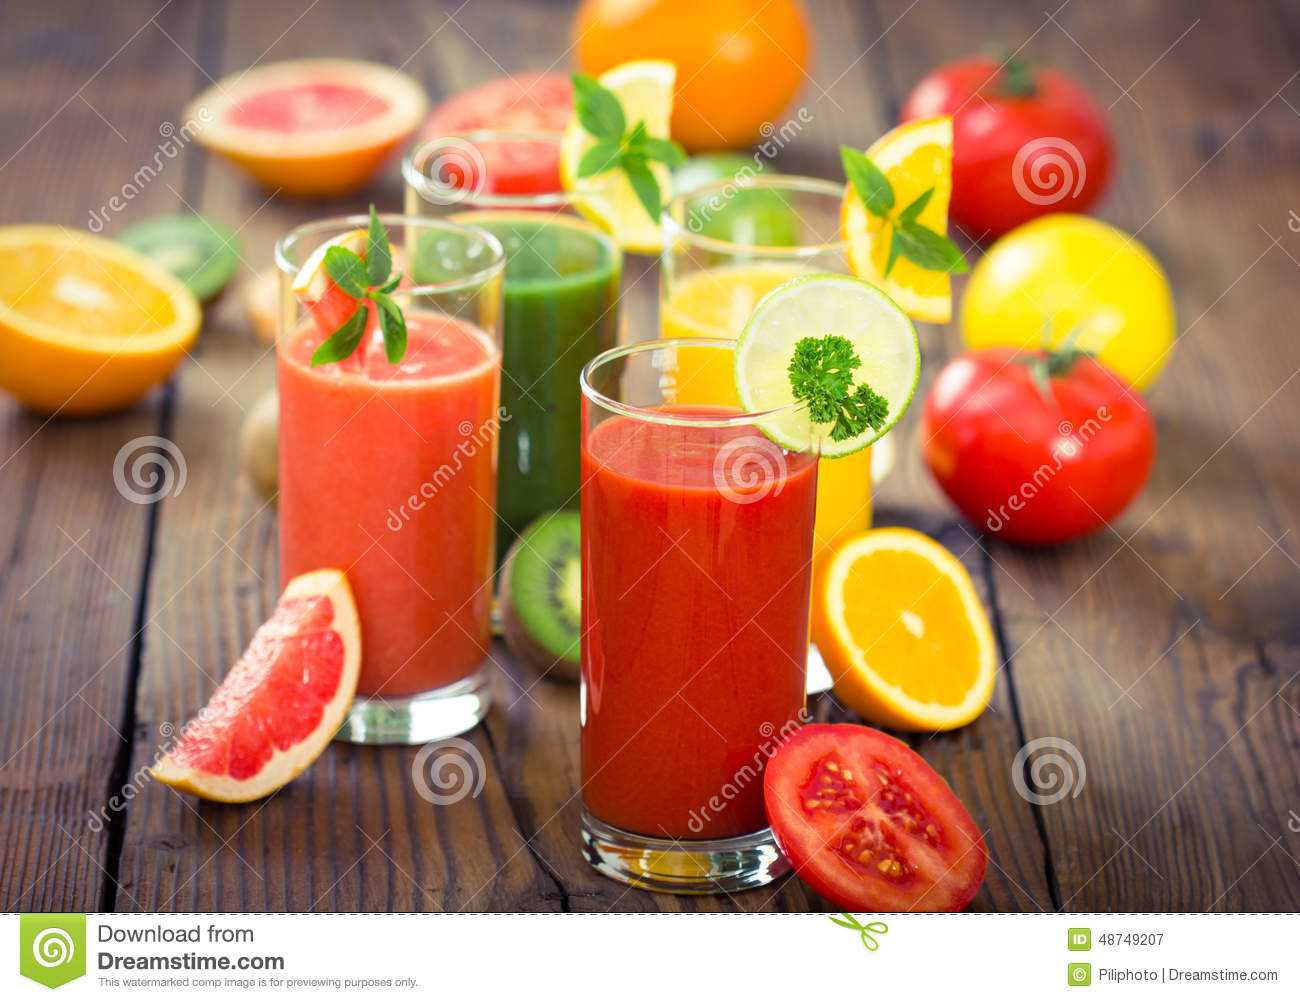 Healthy Fruit And Vegetable Smoothies  Healthy Fruits And Ve ables Smoothies Stock Image